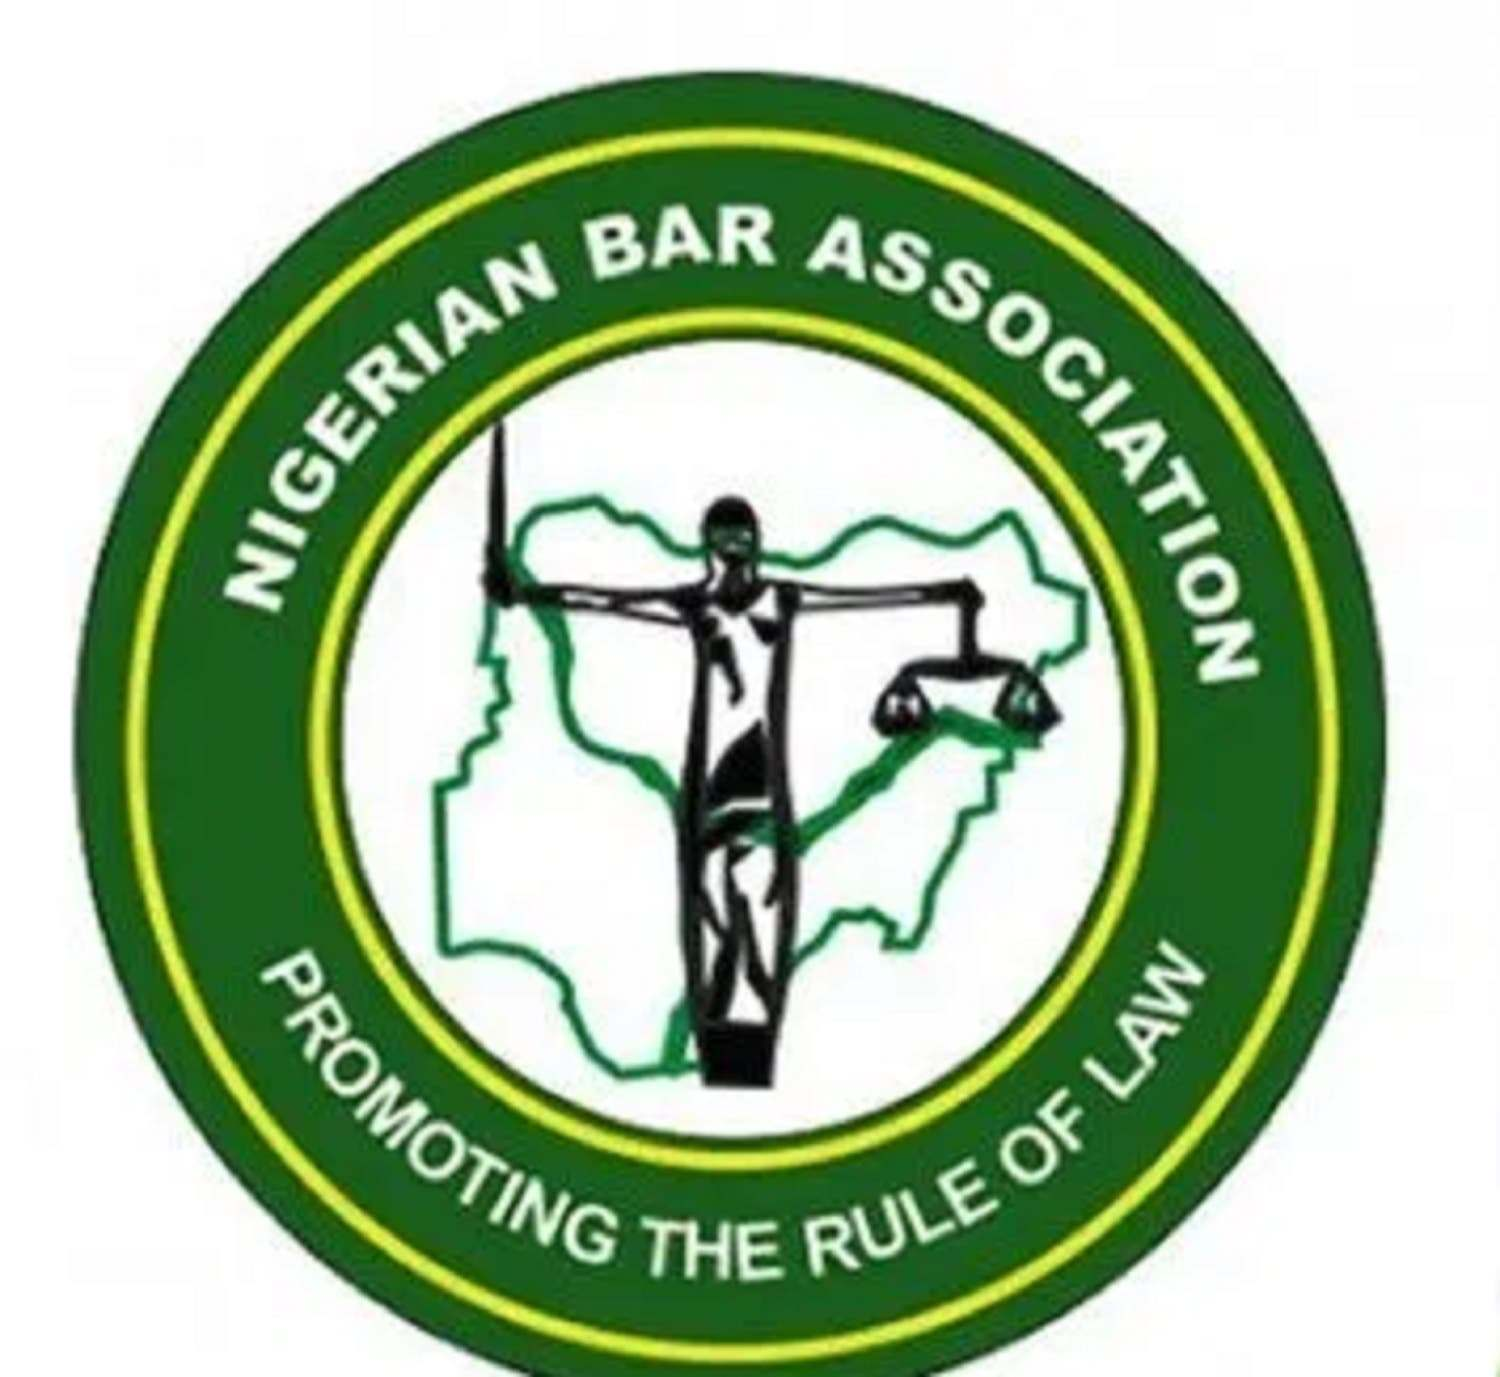 Nigerian Bar Association: Failing in mission and vision!